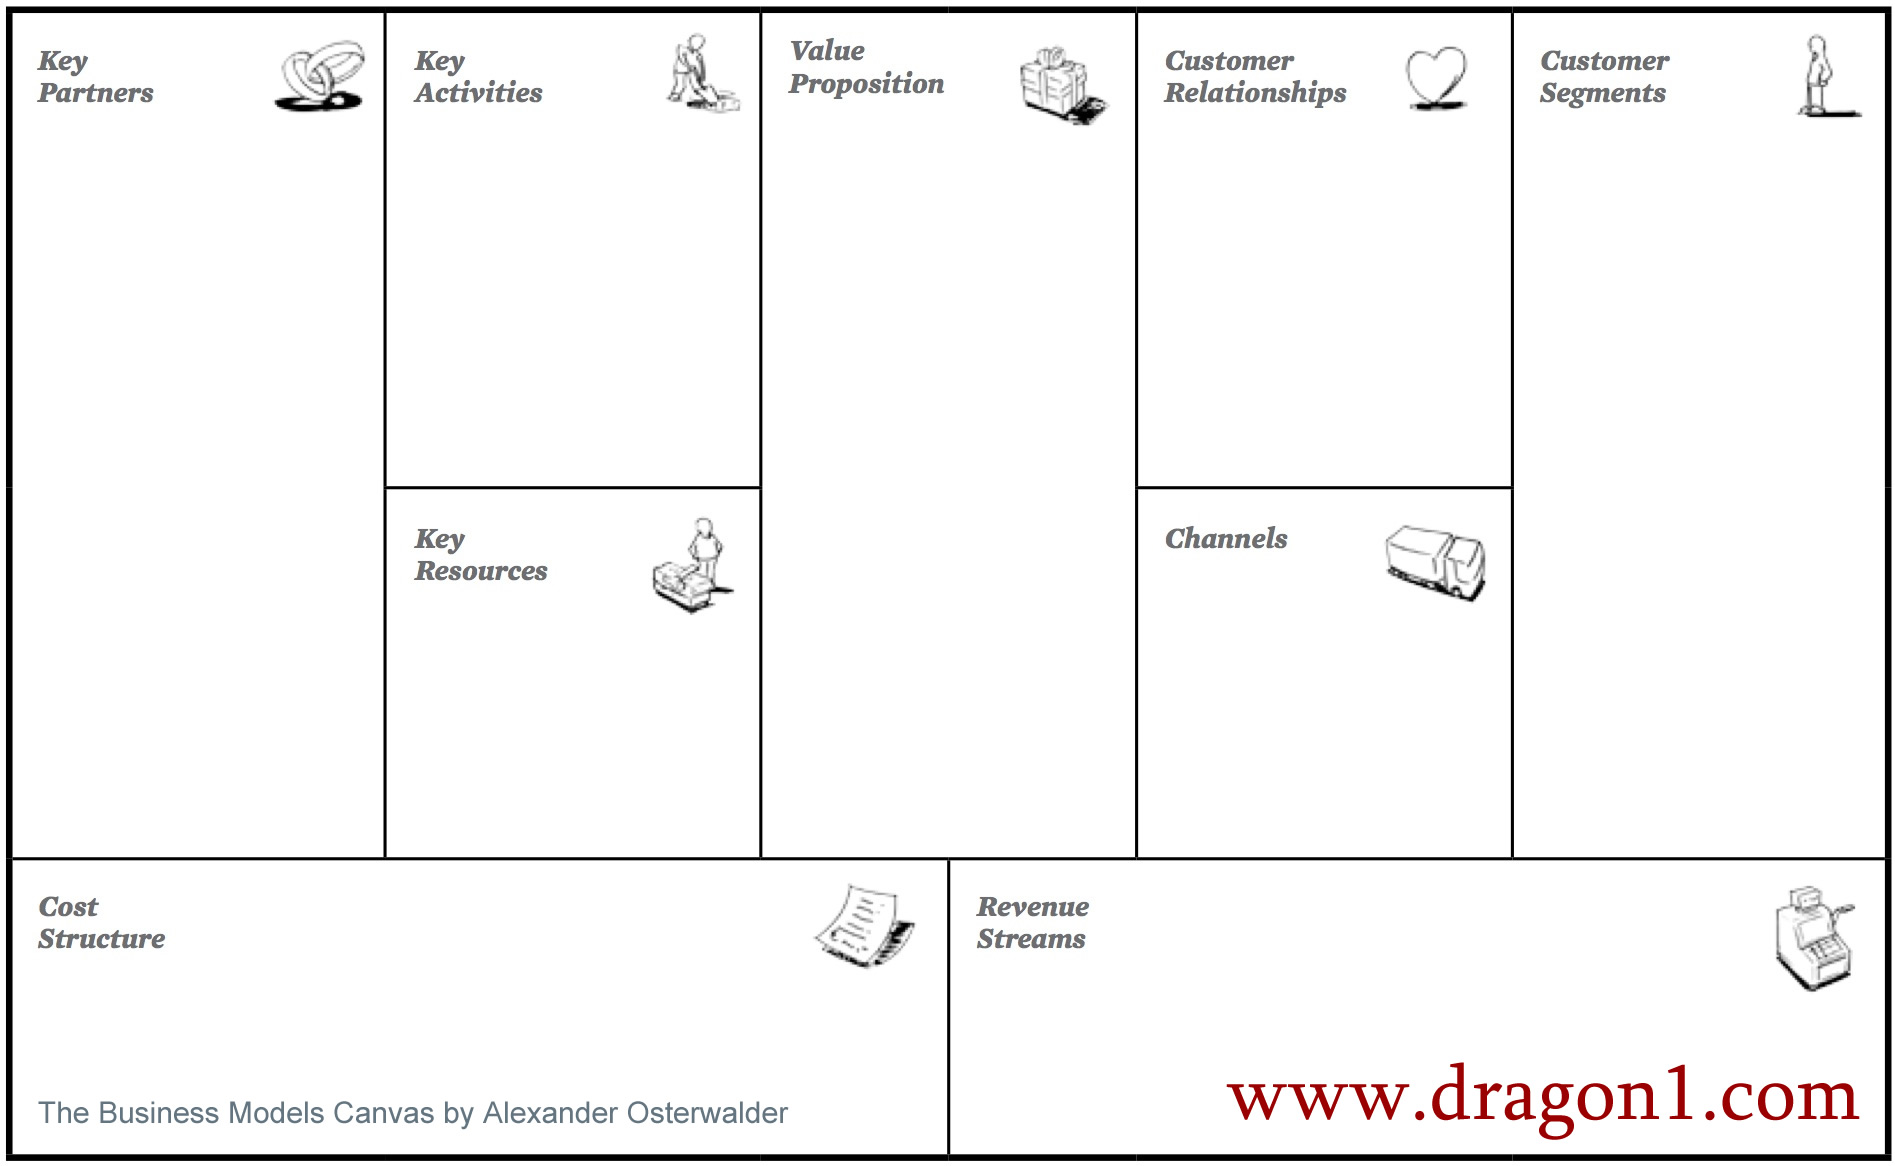 Business model canvas template dragon1 business model canvas template friedricerecipe Choice Image